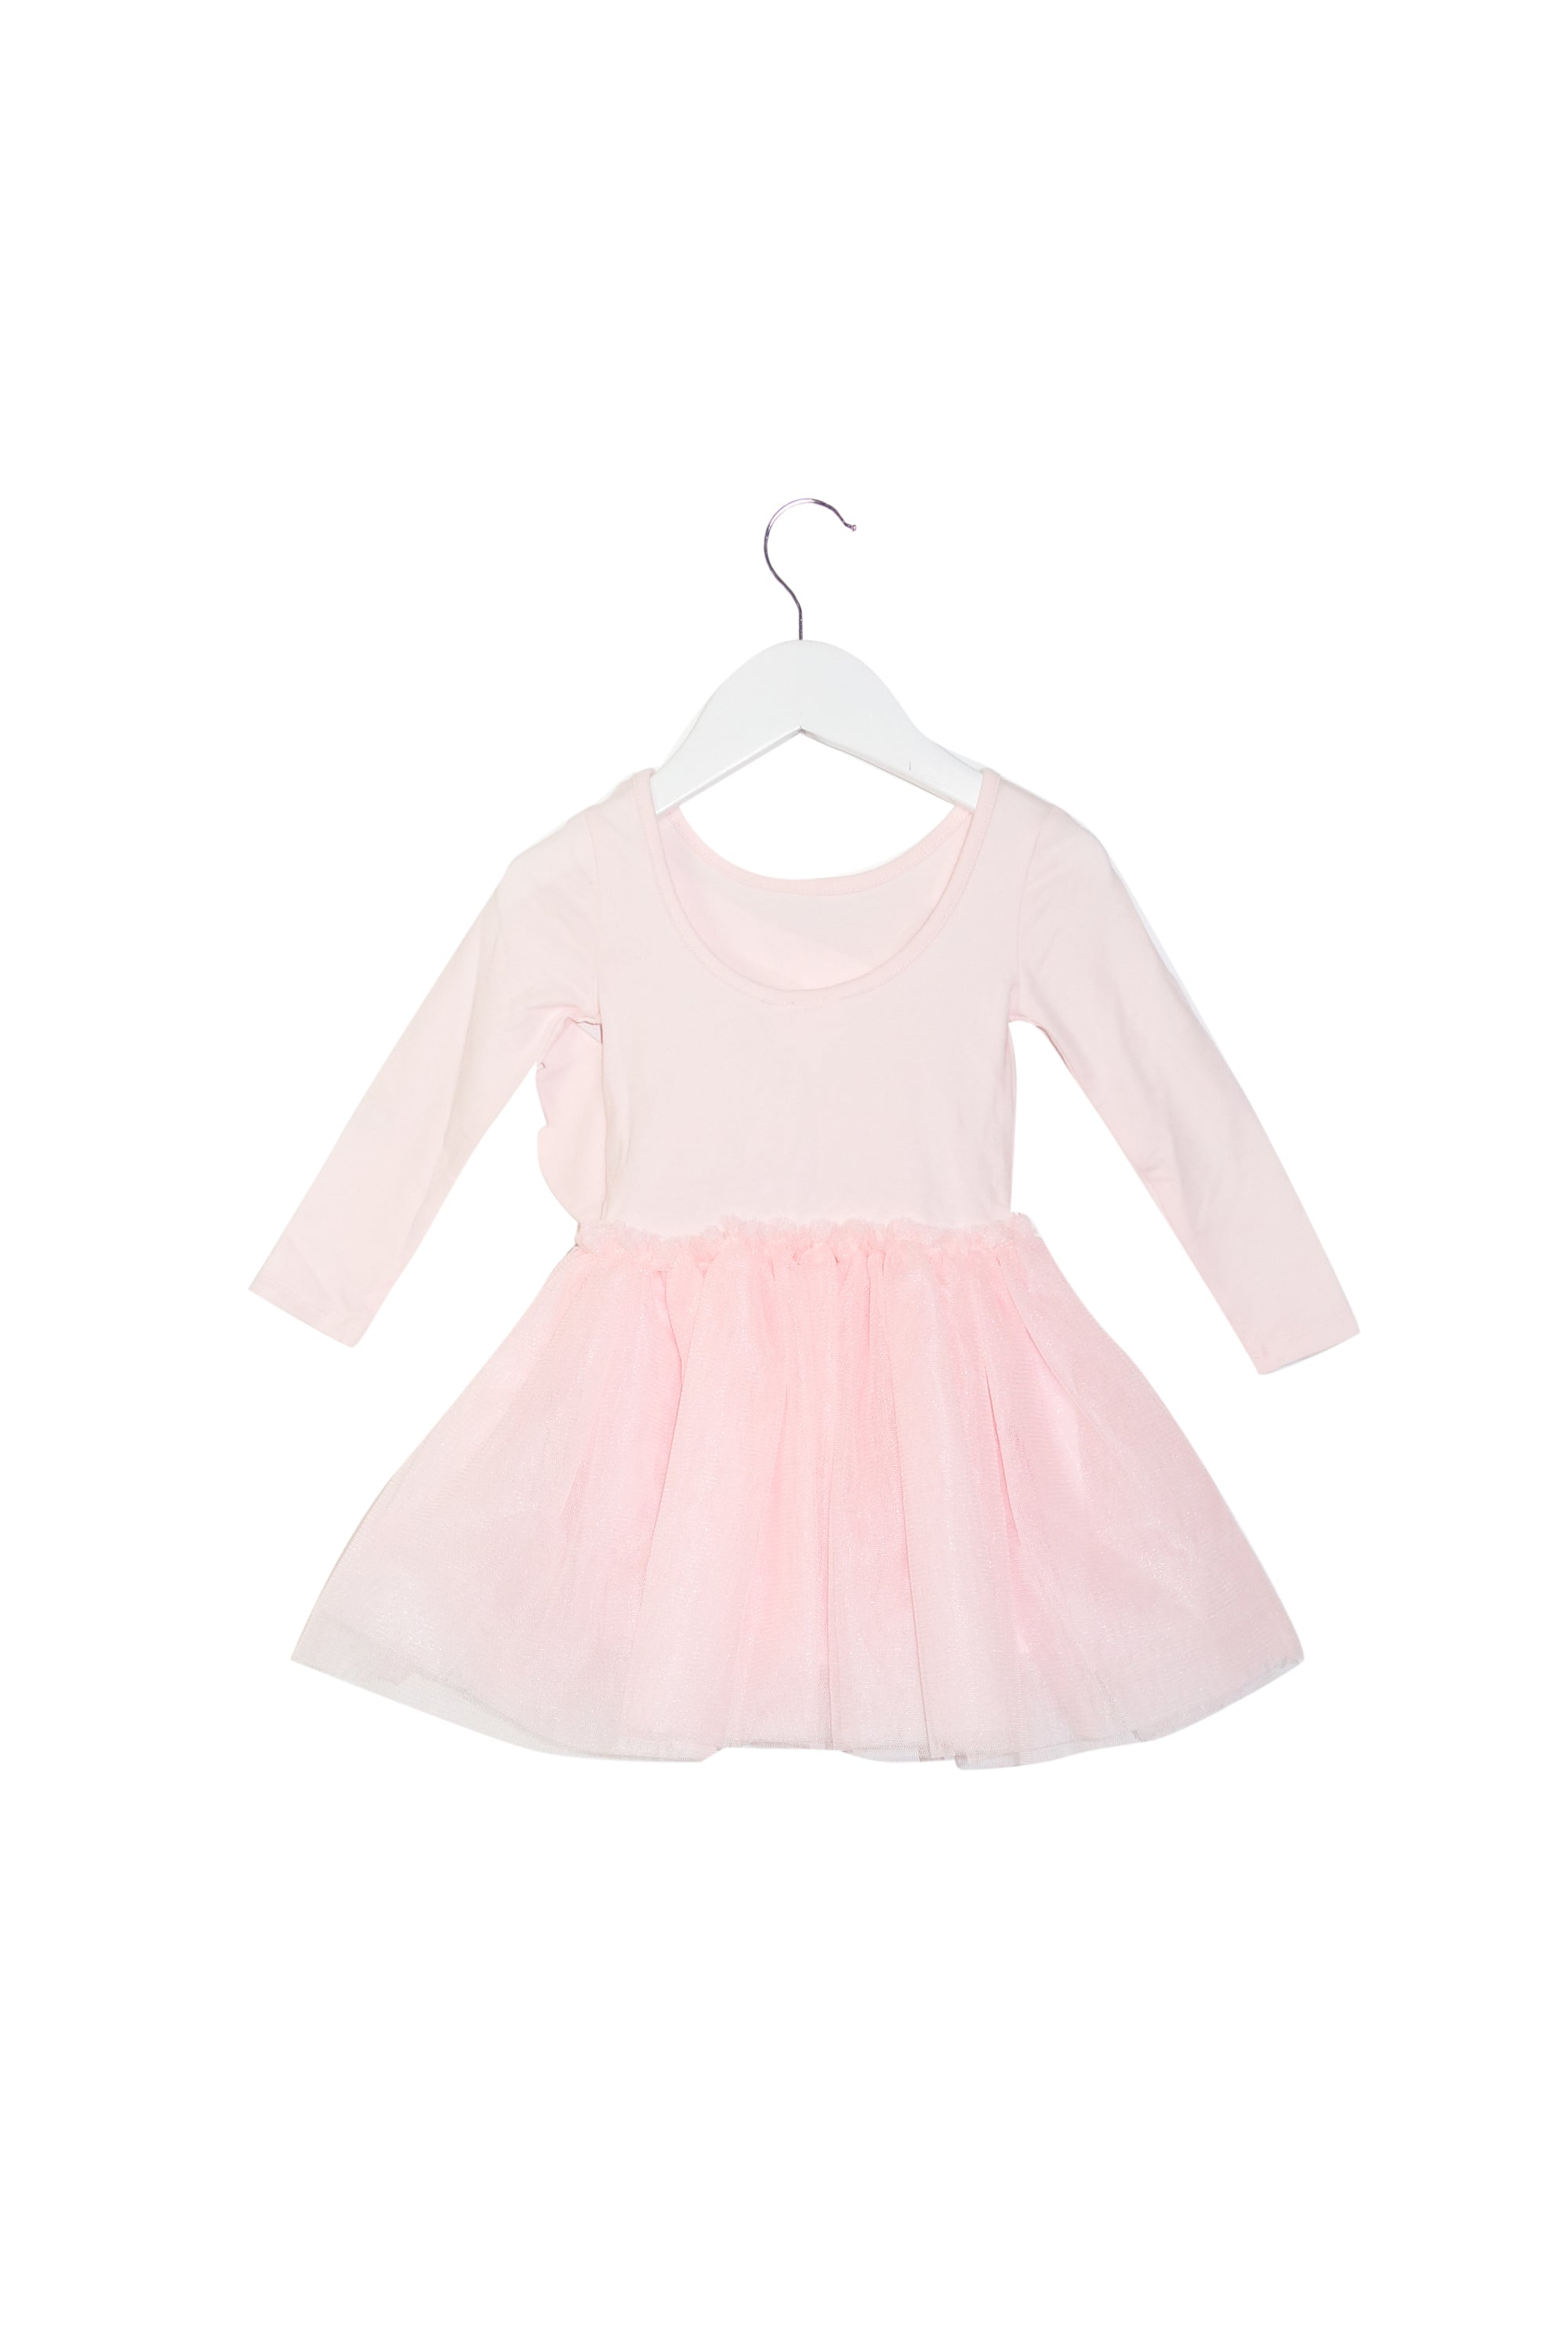 10013639 Seed Baby ~ Dress 2T at Retykle